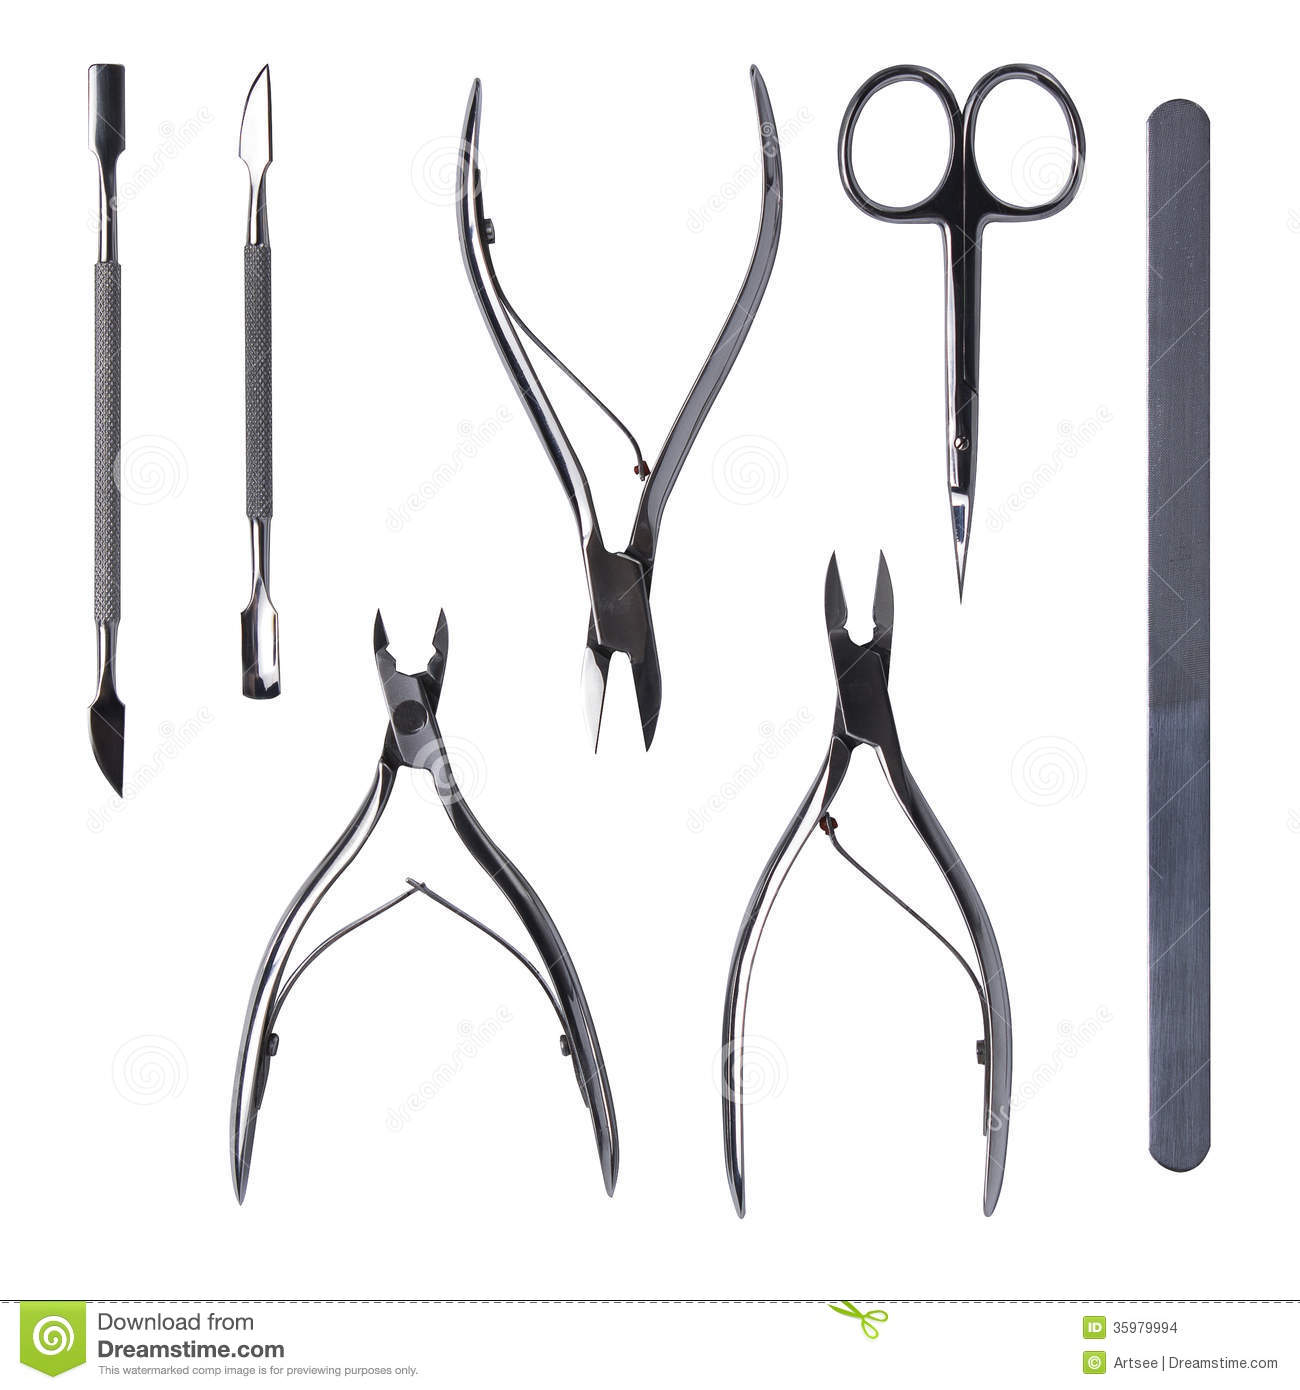 Tools Of A Manicure Set On A White Background Stock Photo - Image of ...